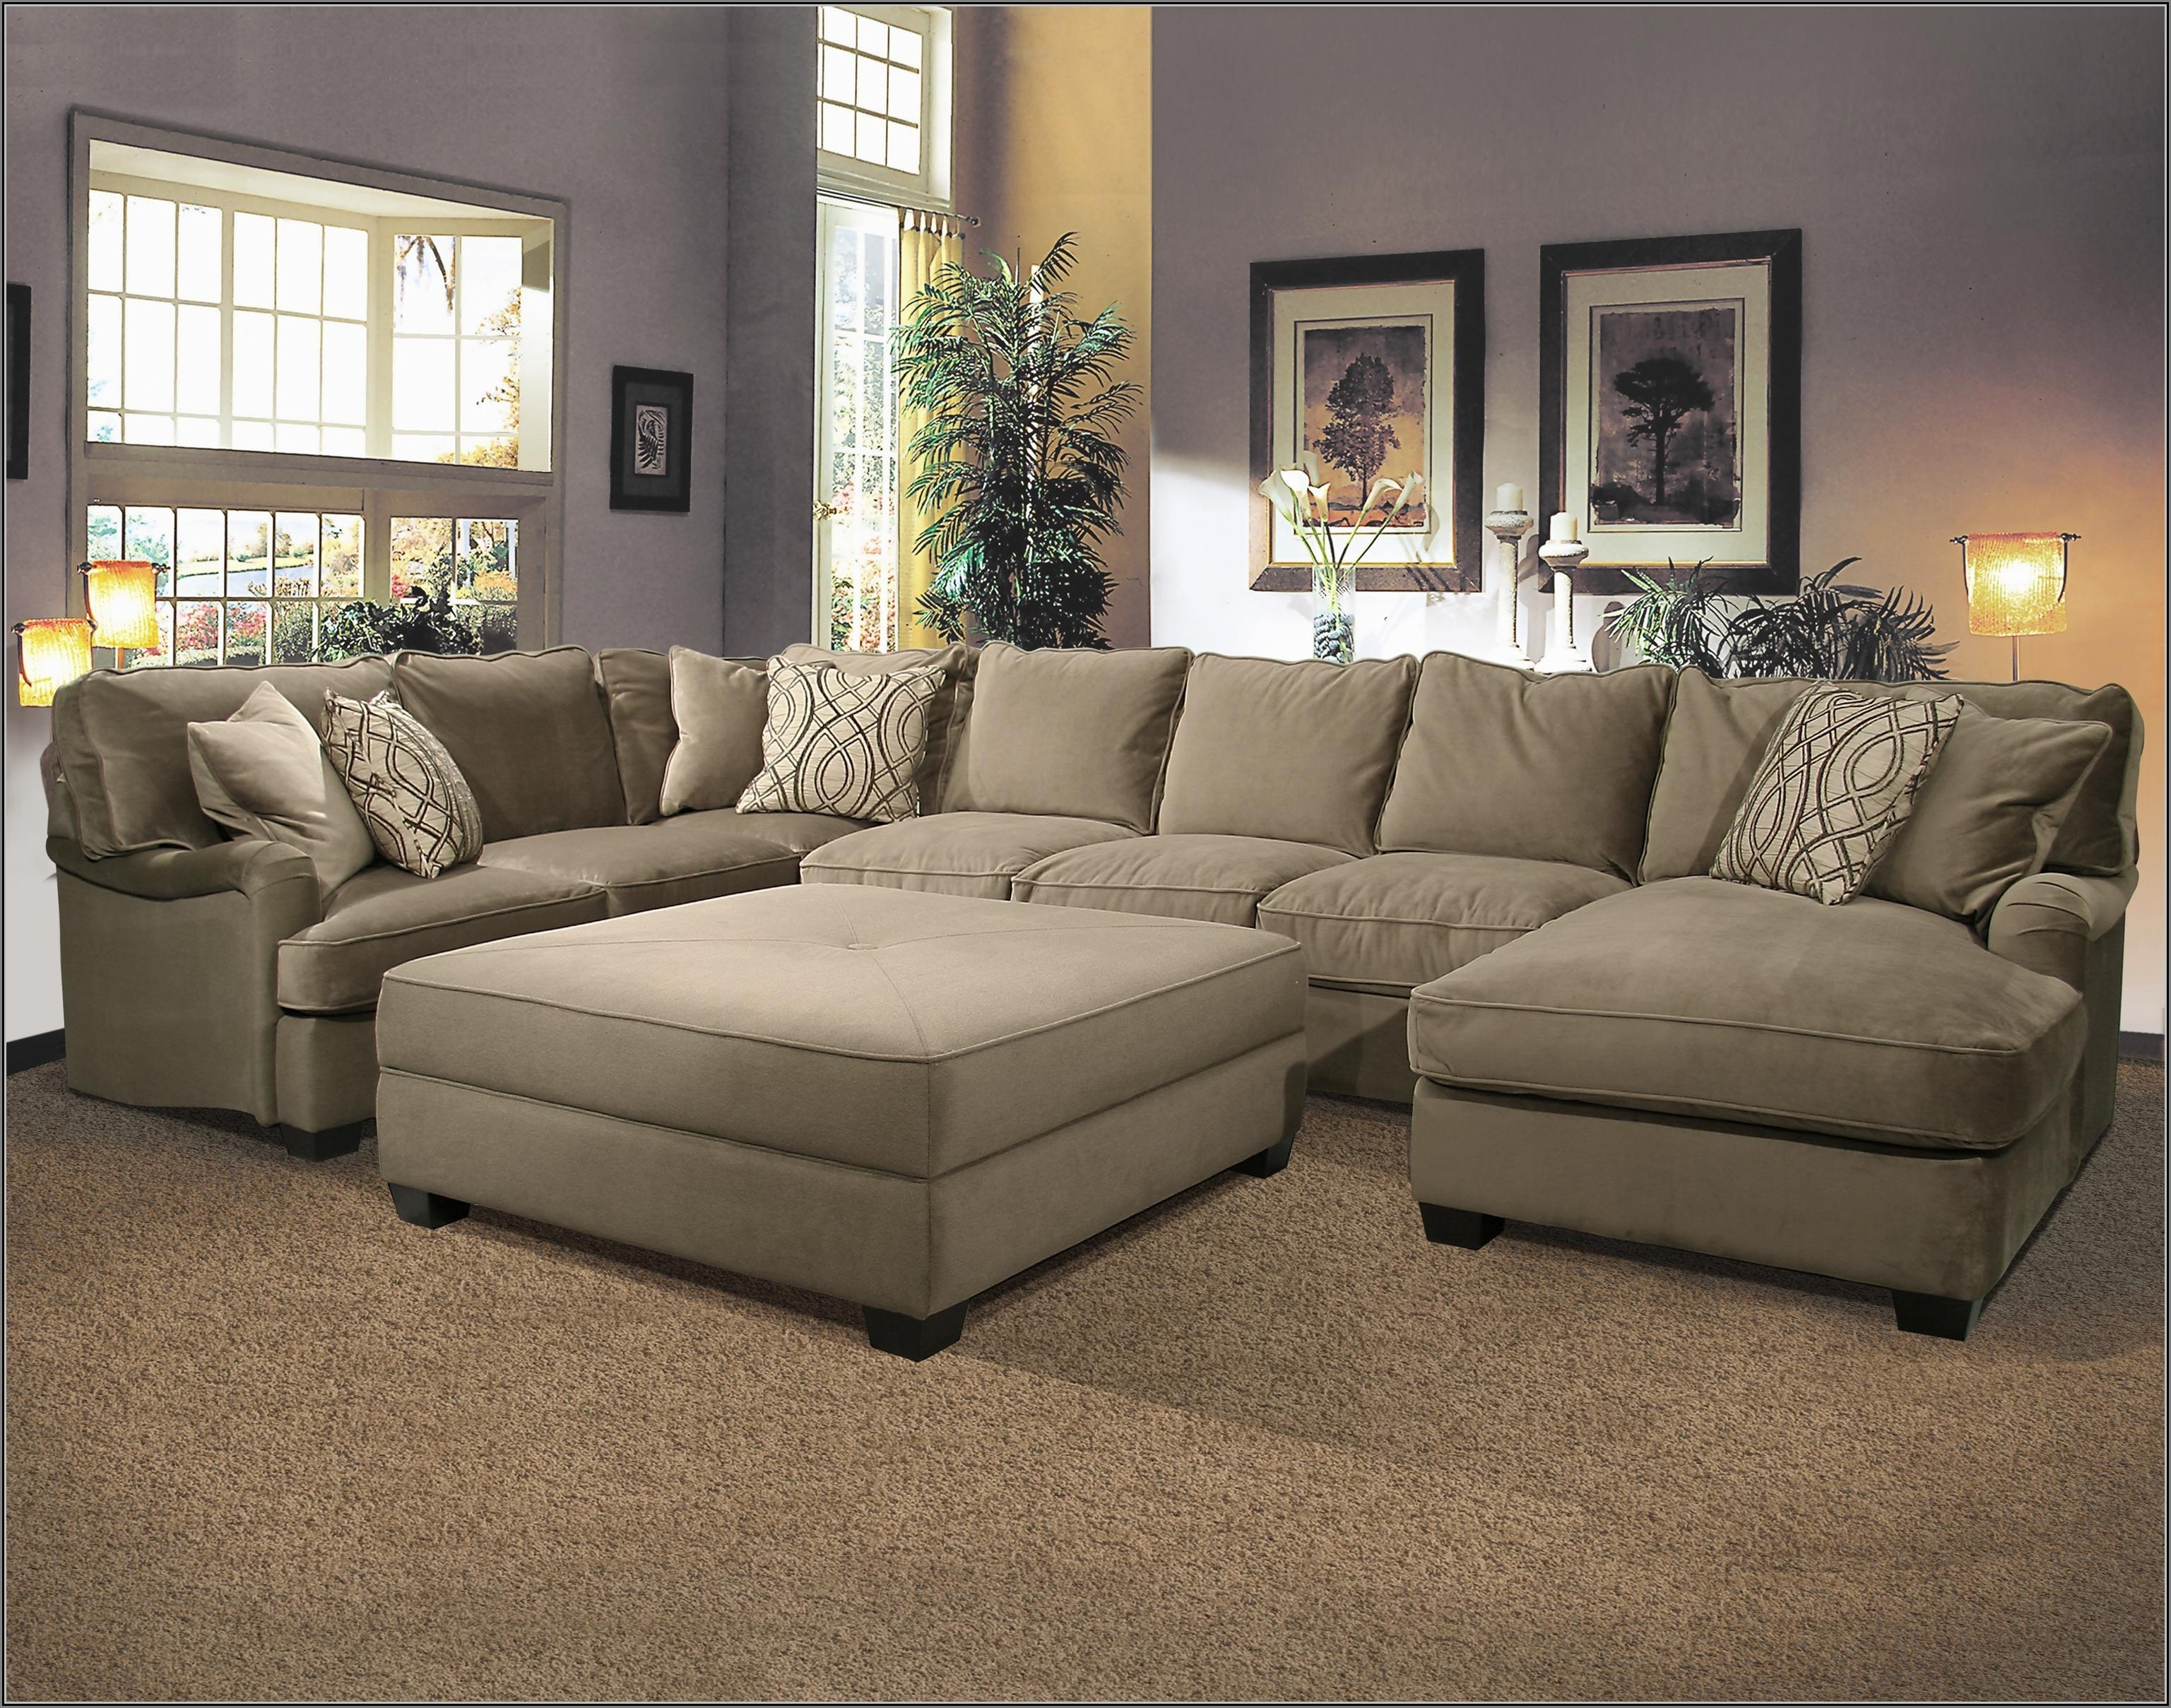 Sectional Sofa With Large Ottoman Hotelsbacau Com Intended For Inside U Shaped Sectionals Image